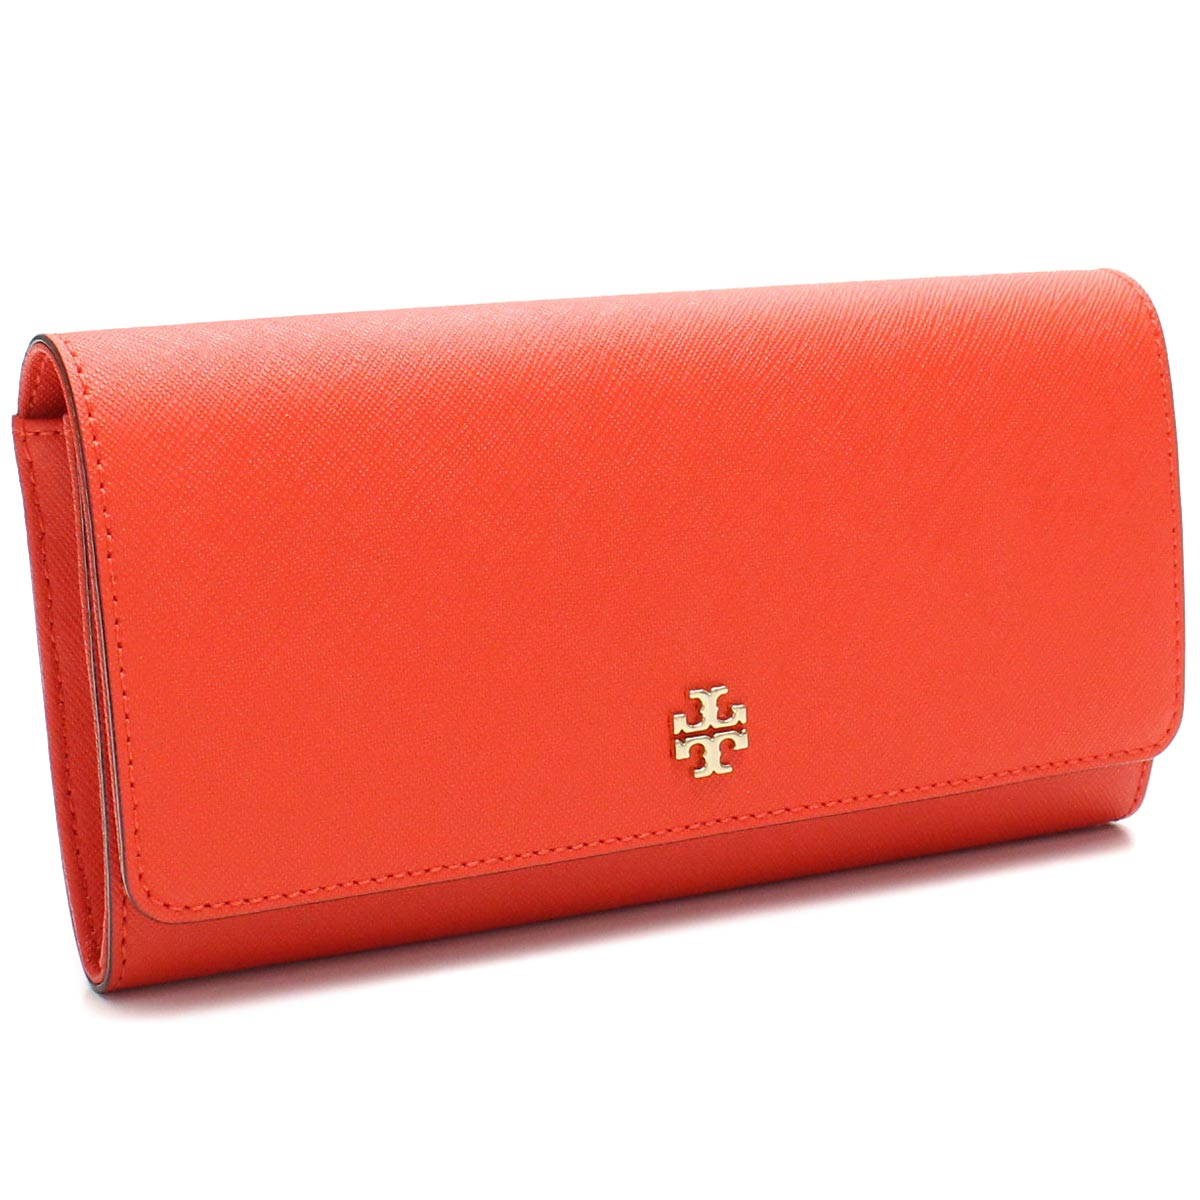 671176cca5a Bighit The total brand wholesale: Tory Burch (TORY BURCH) ROBINSON ENVELOPE  CONTINENTAL wallet two fold rubx 11169072-605 POPPY RED Orange series wallet(  ...